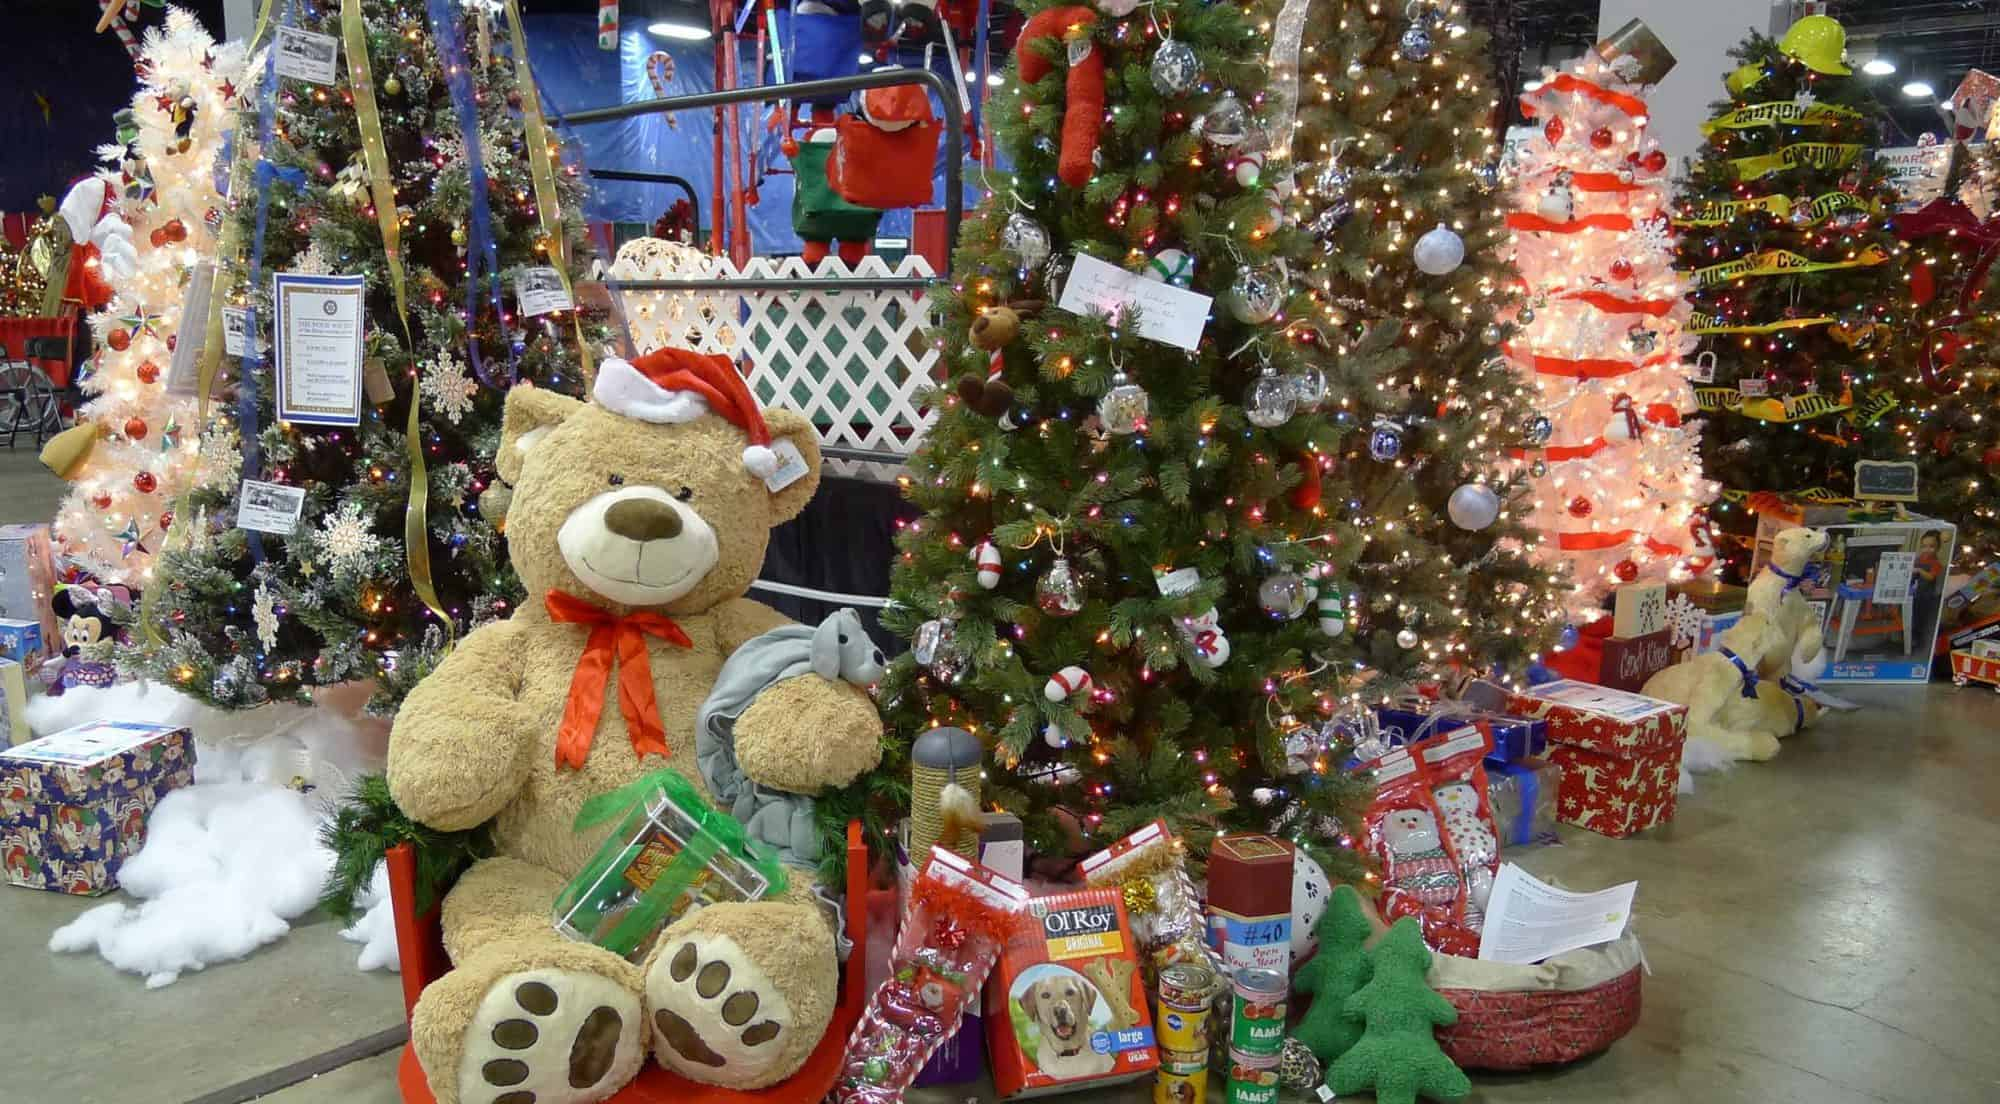 Top ten holiday events in salt lake city to enjoy with kids jpg 2395x1321 Kentucky christmas